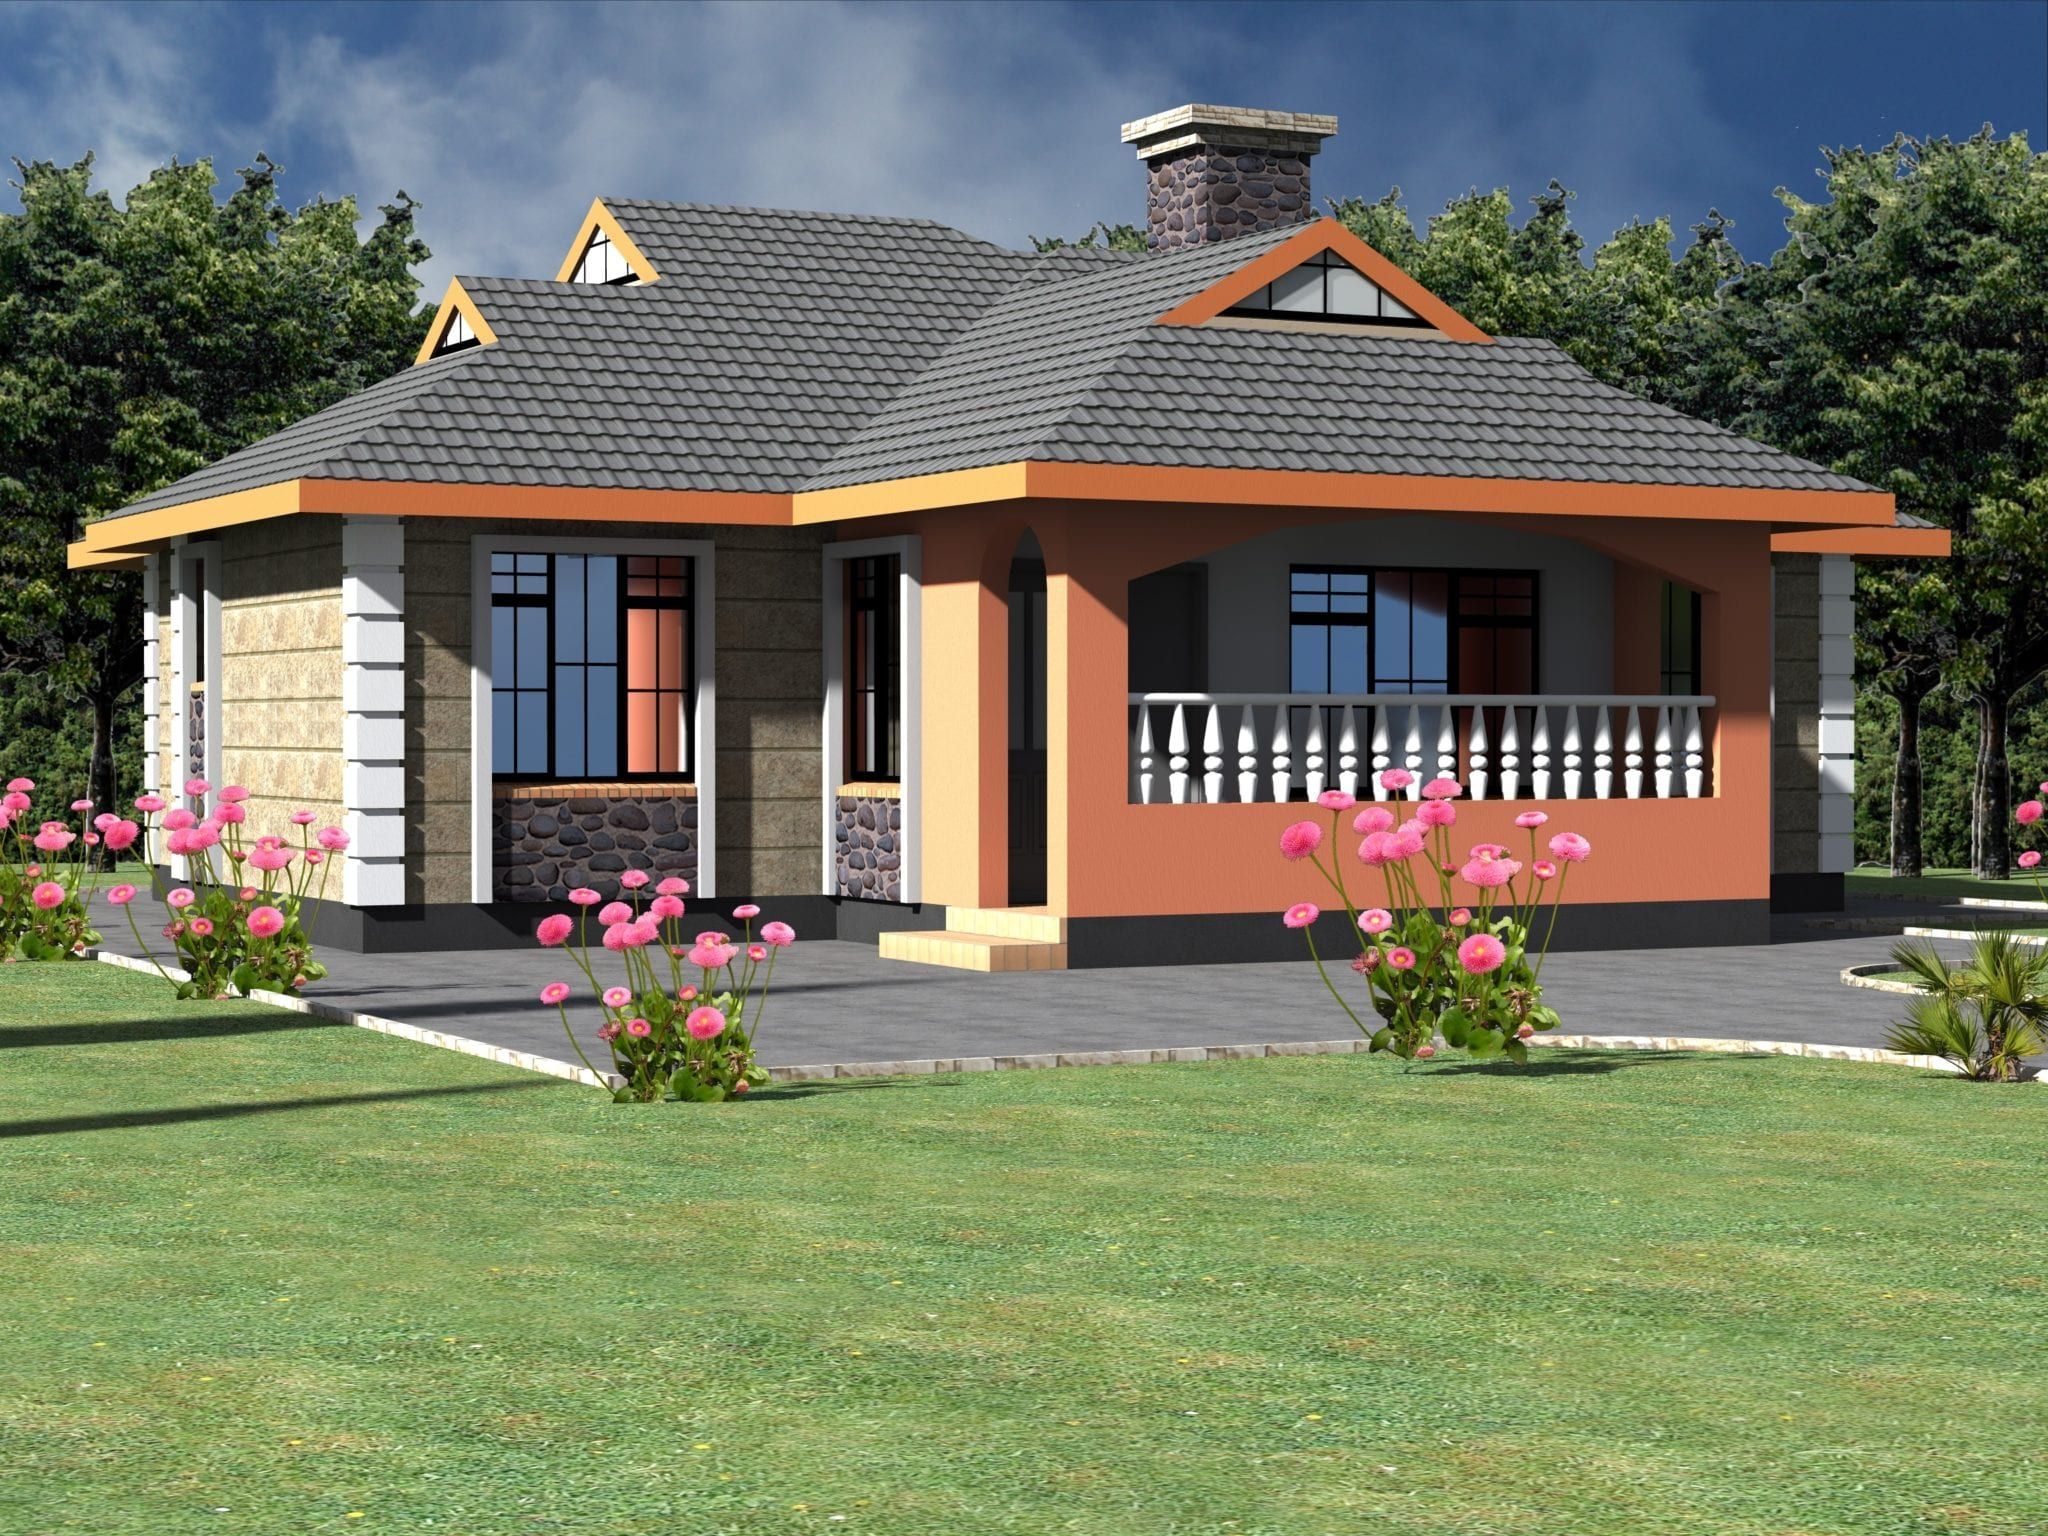 Neatly Designed Simple 3 Bedroom Bungalow House Hpd Consult Beautiful House Plans Bedroom House Plans Simple House Plans